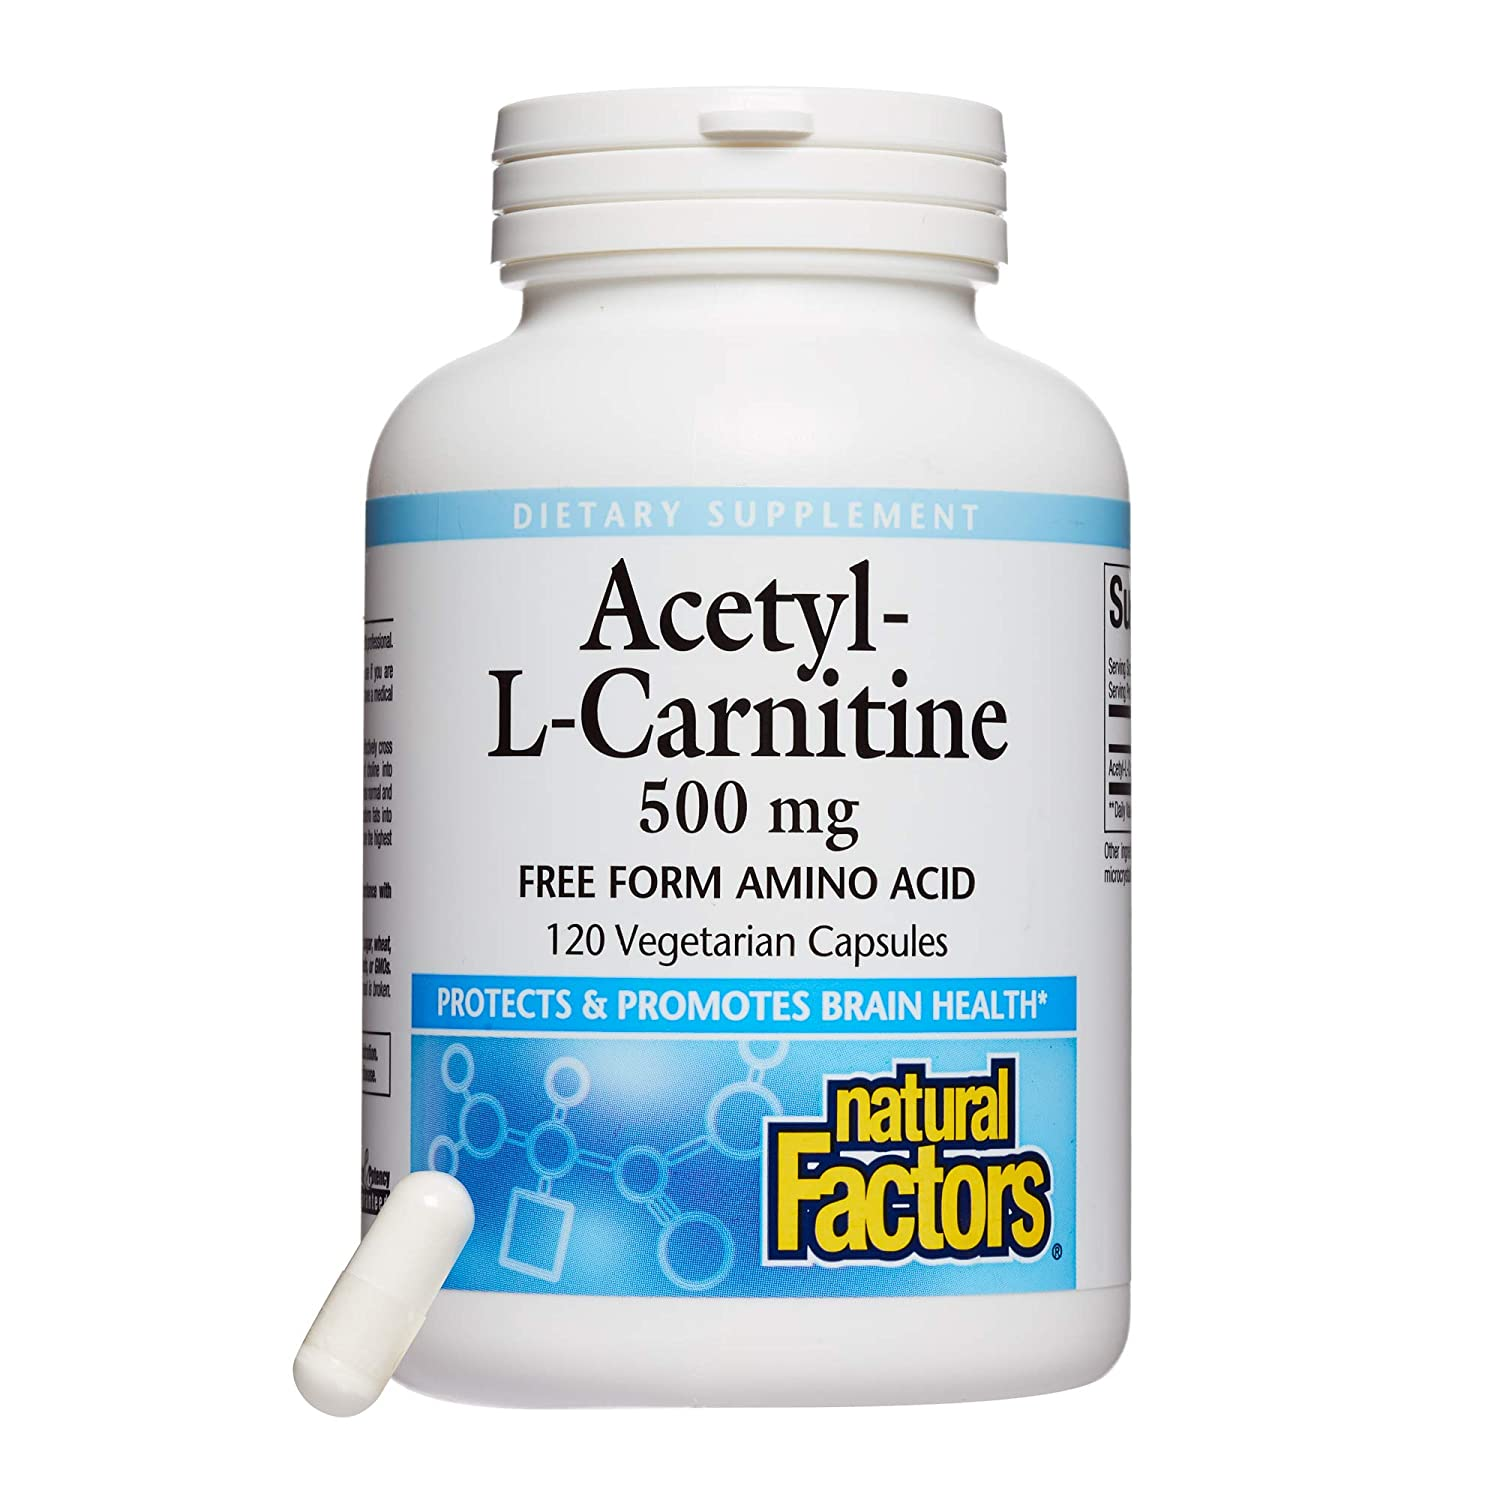 Natural Factors, Acetyl L-Carnitine 500 mg, Promotes a Healthy Memory, Concentration and Brain Function, 120 capsules 60 servings